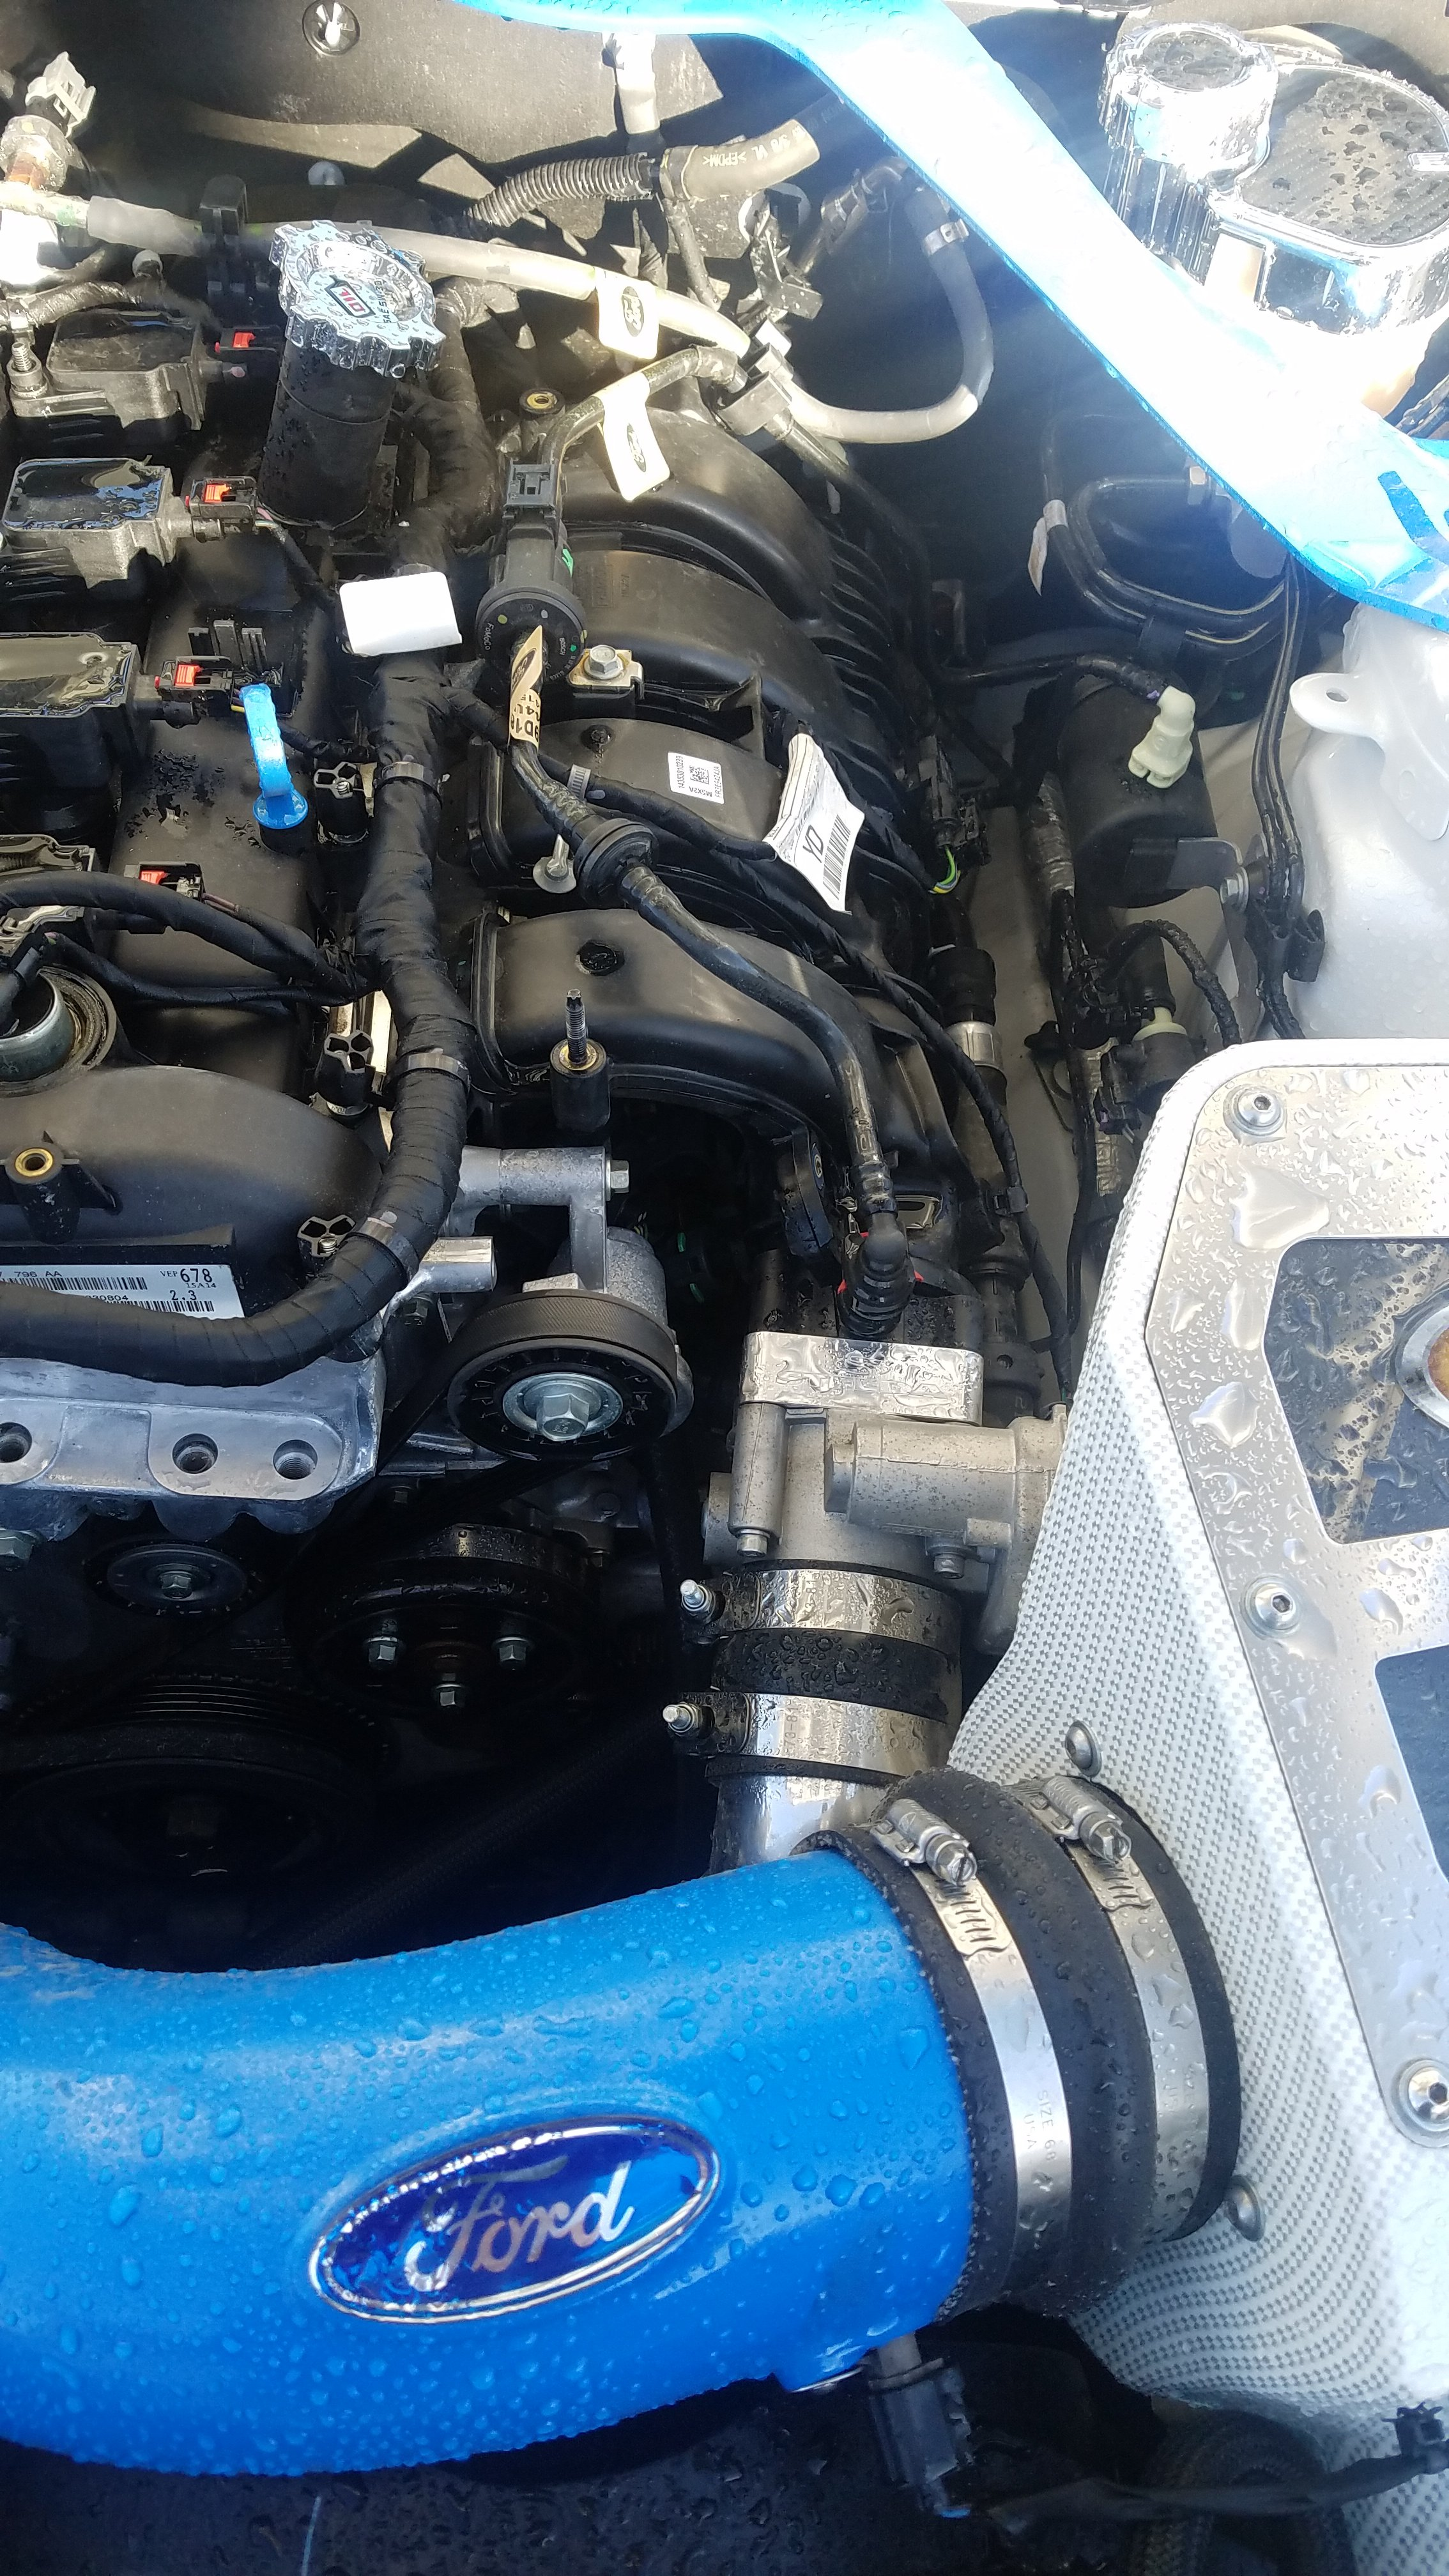 2016 Eco code PO1450 | Ford Mustang Ecoboost Forum